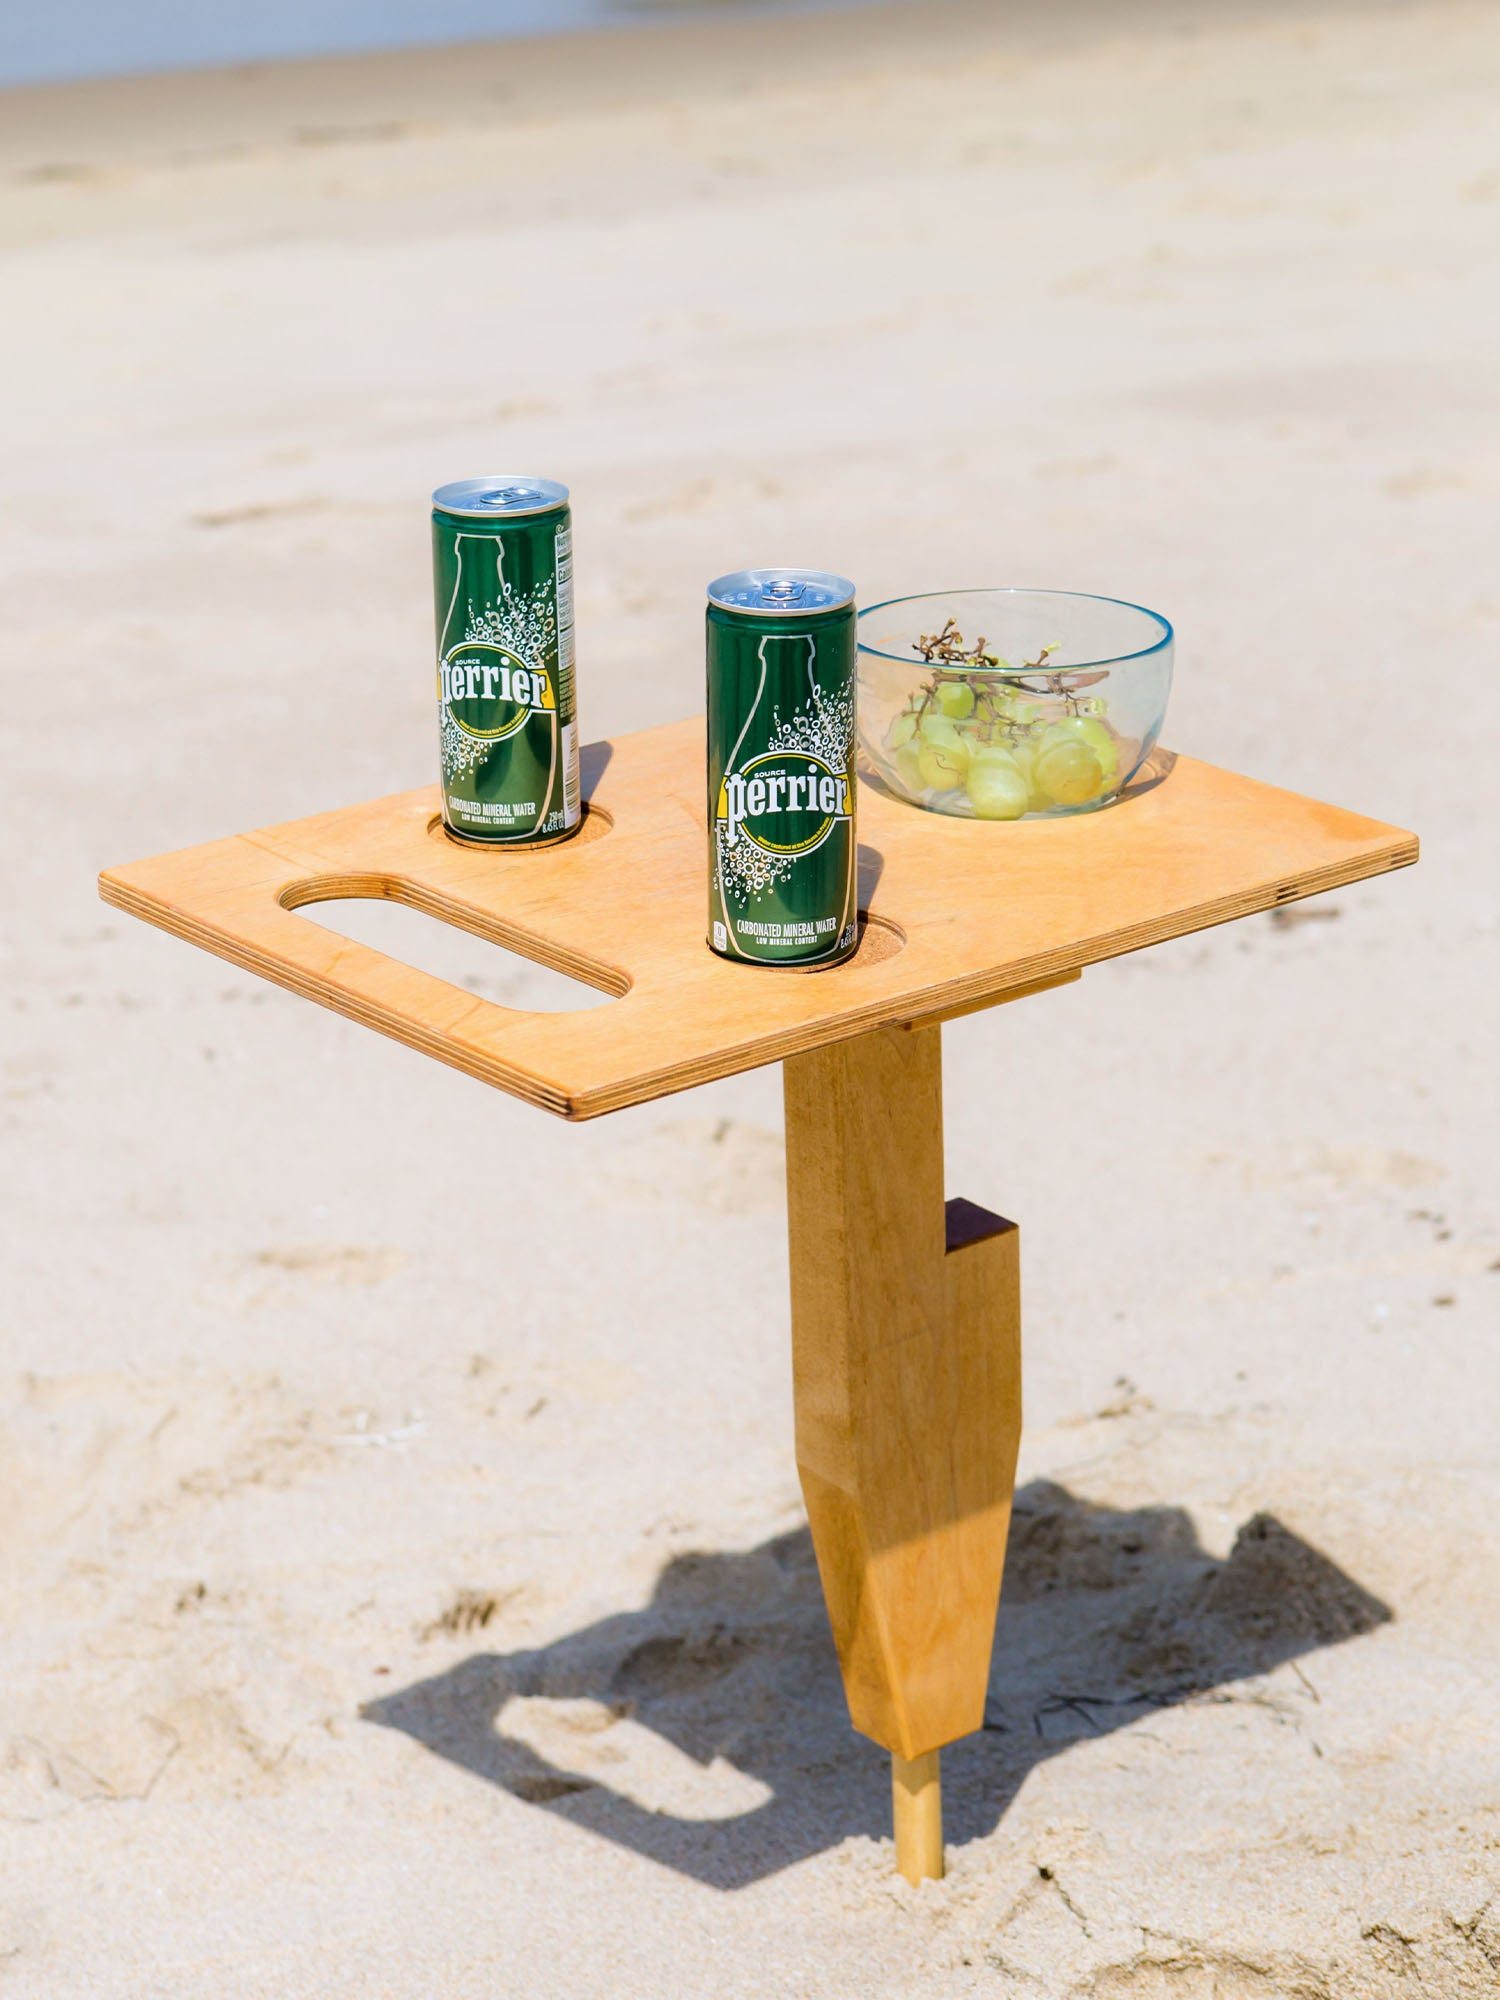 Goulburn portable beach table in naturally sunkissed color unfolded standing up in sand at beach with refreshment drinks and fruit